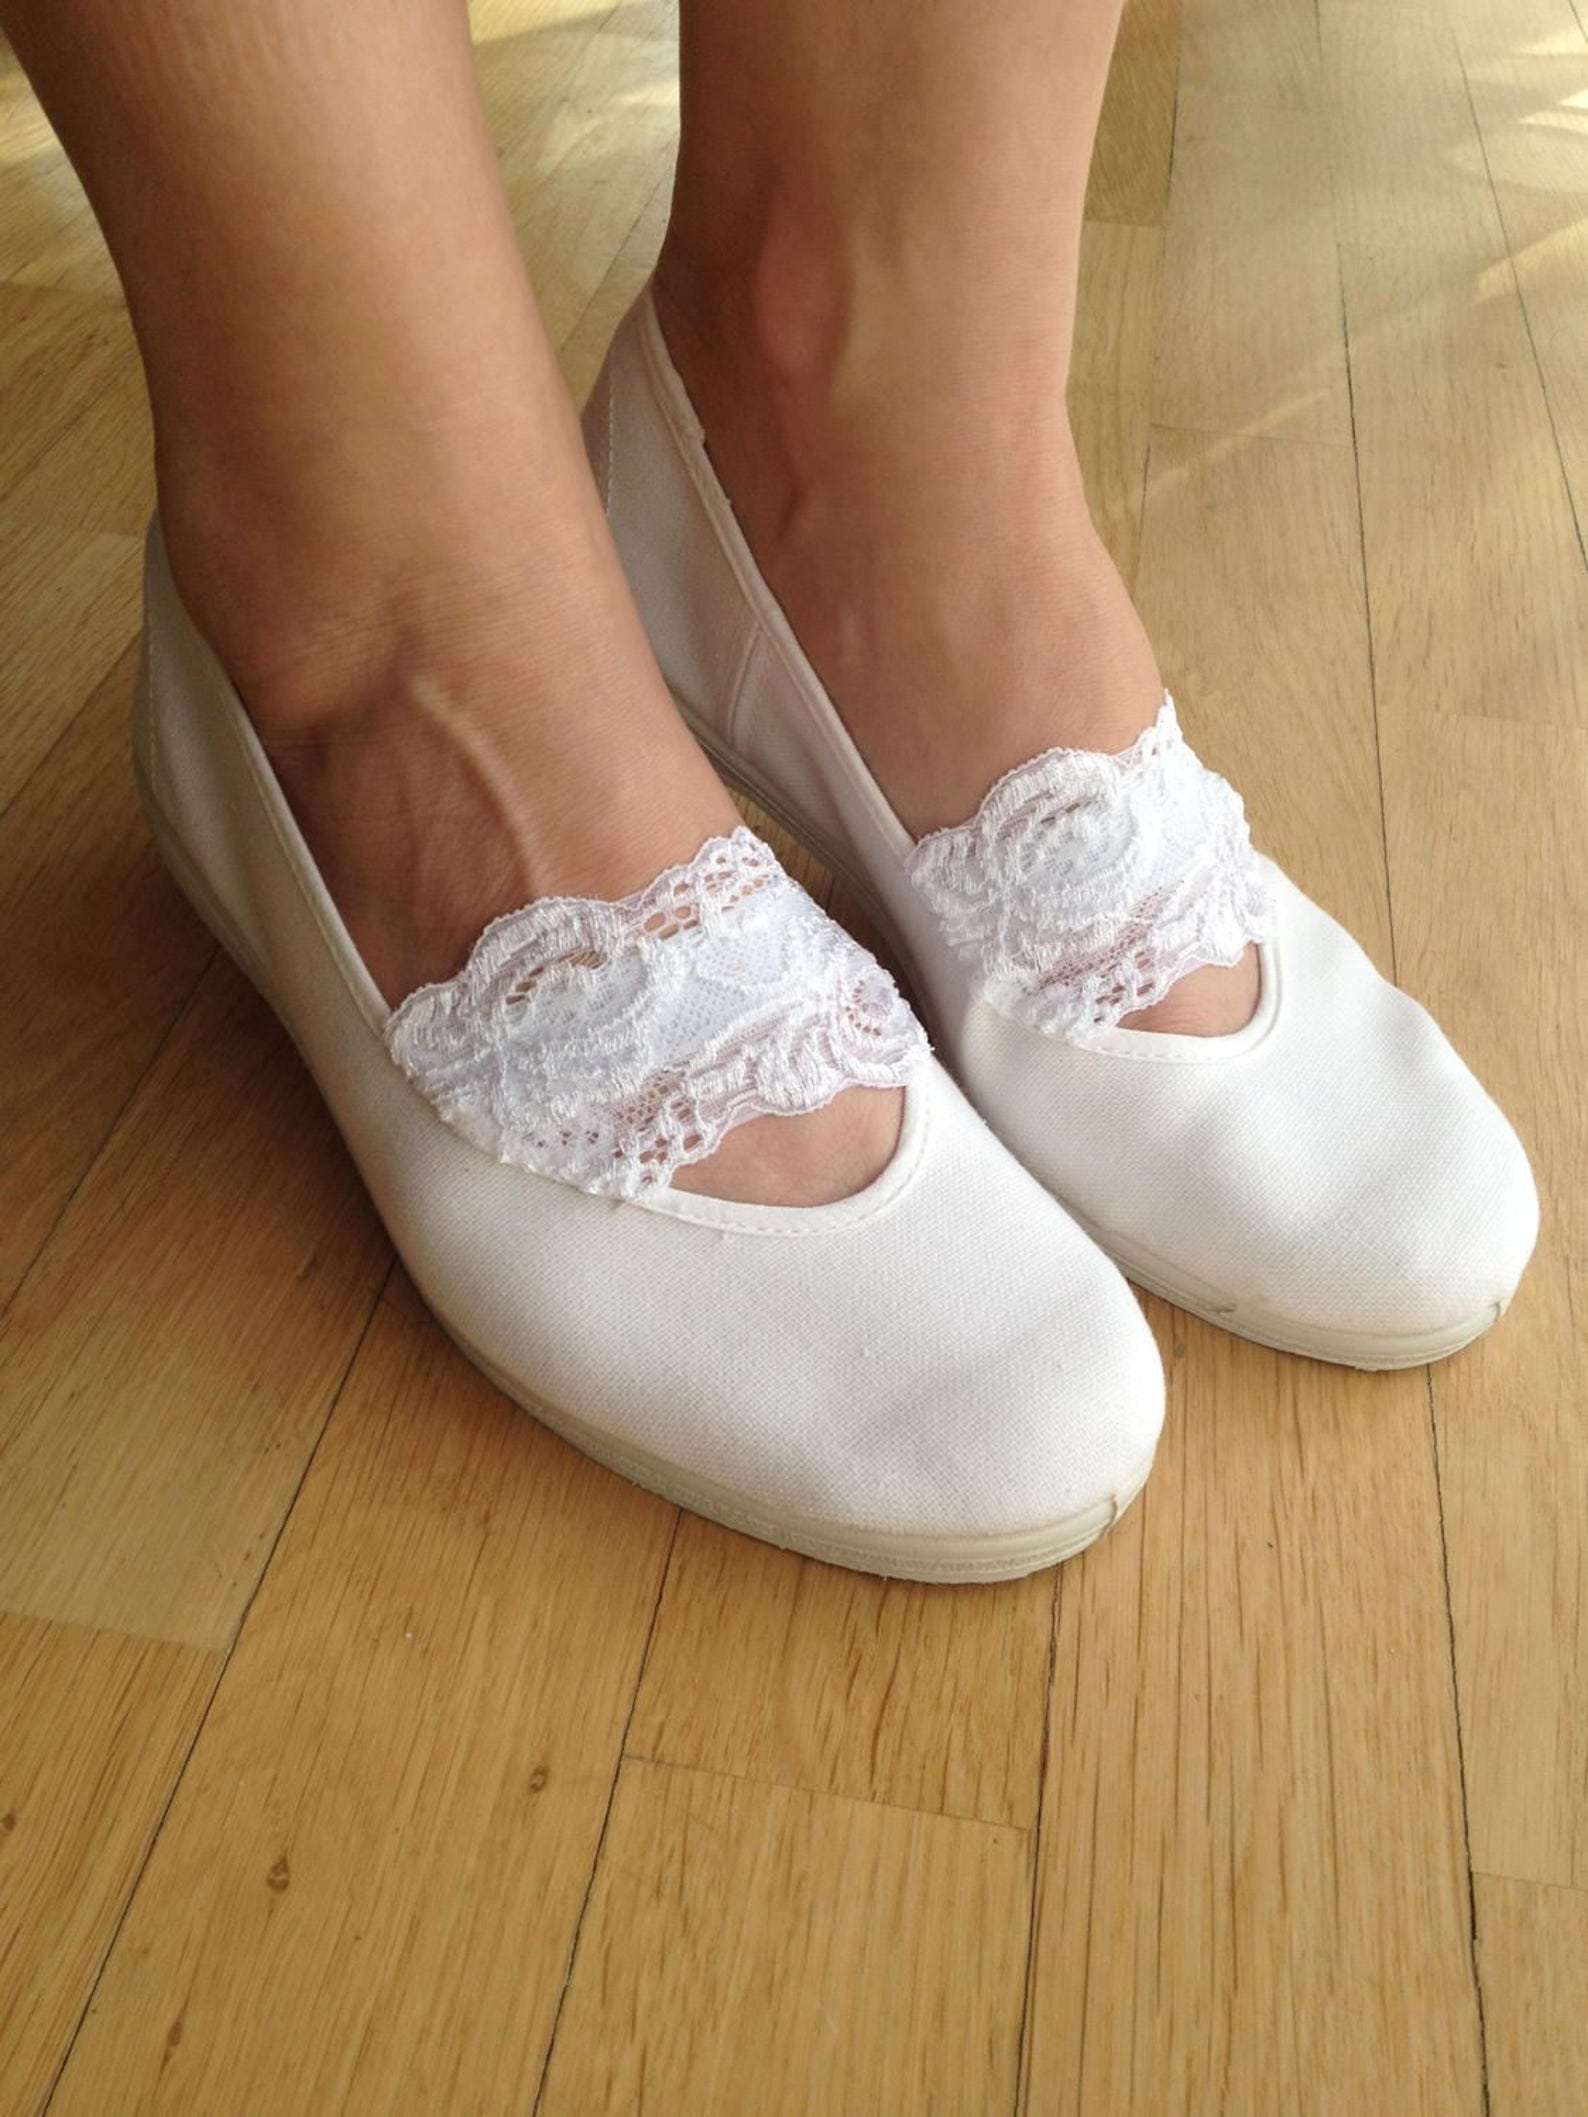 wedding shoes,woman's wedding shoes,girls shoes,mary jane shoes,bridal flats,wedding ballet flats,bridal shoes,summer dress